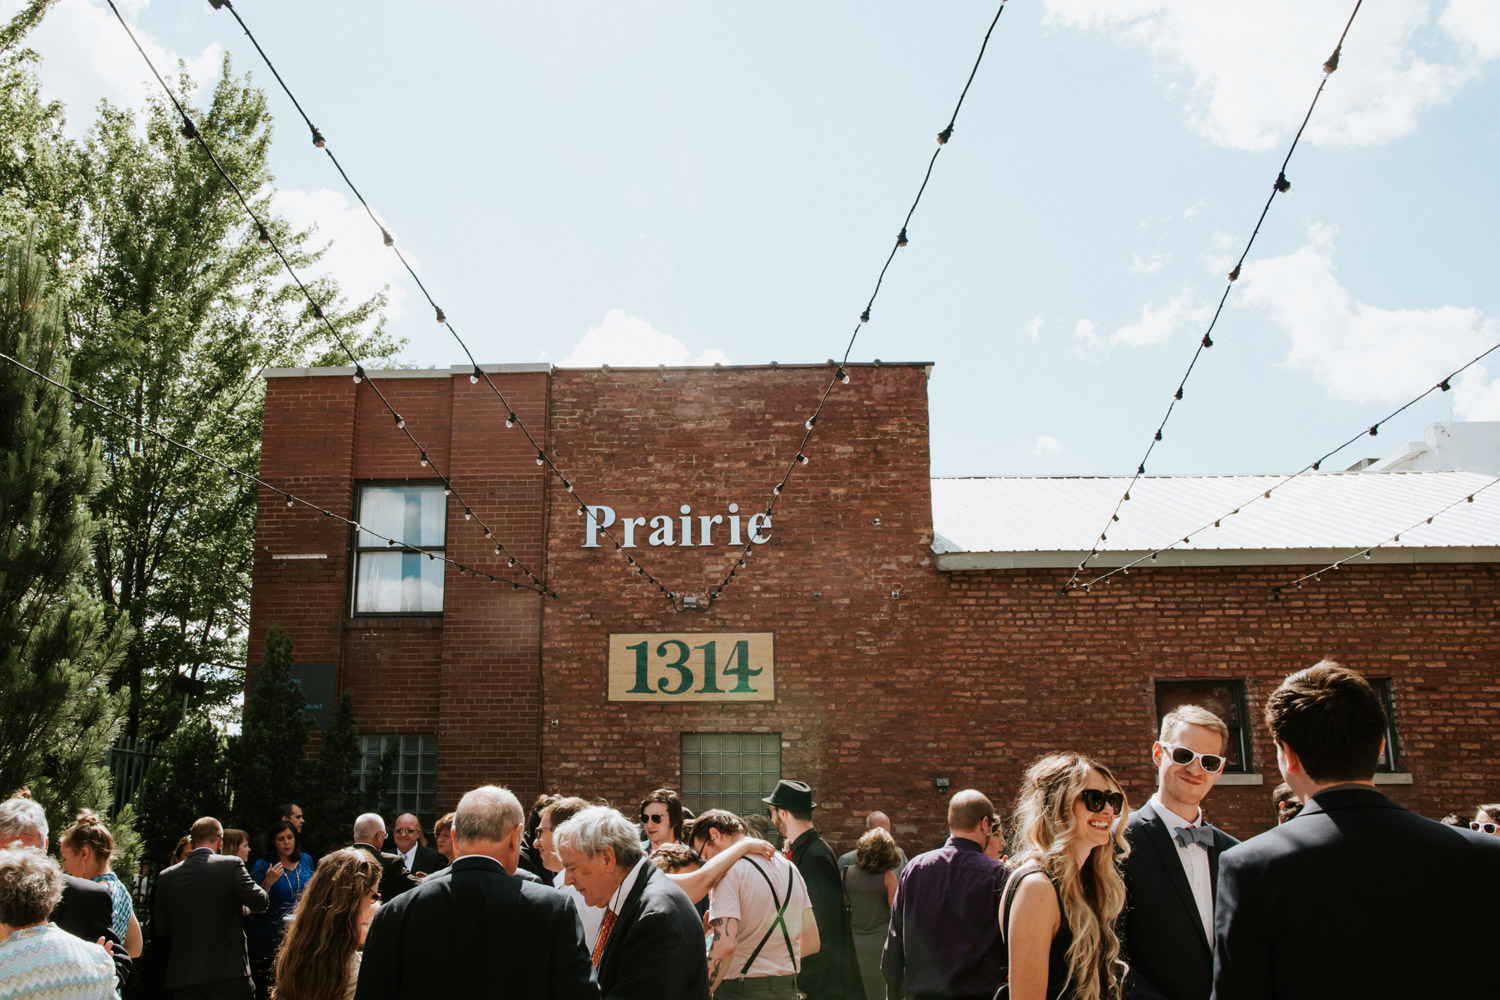 Coctail hour at prairie productions in Chicago